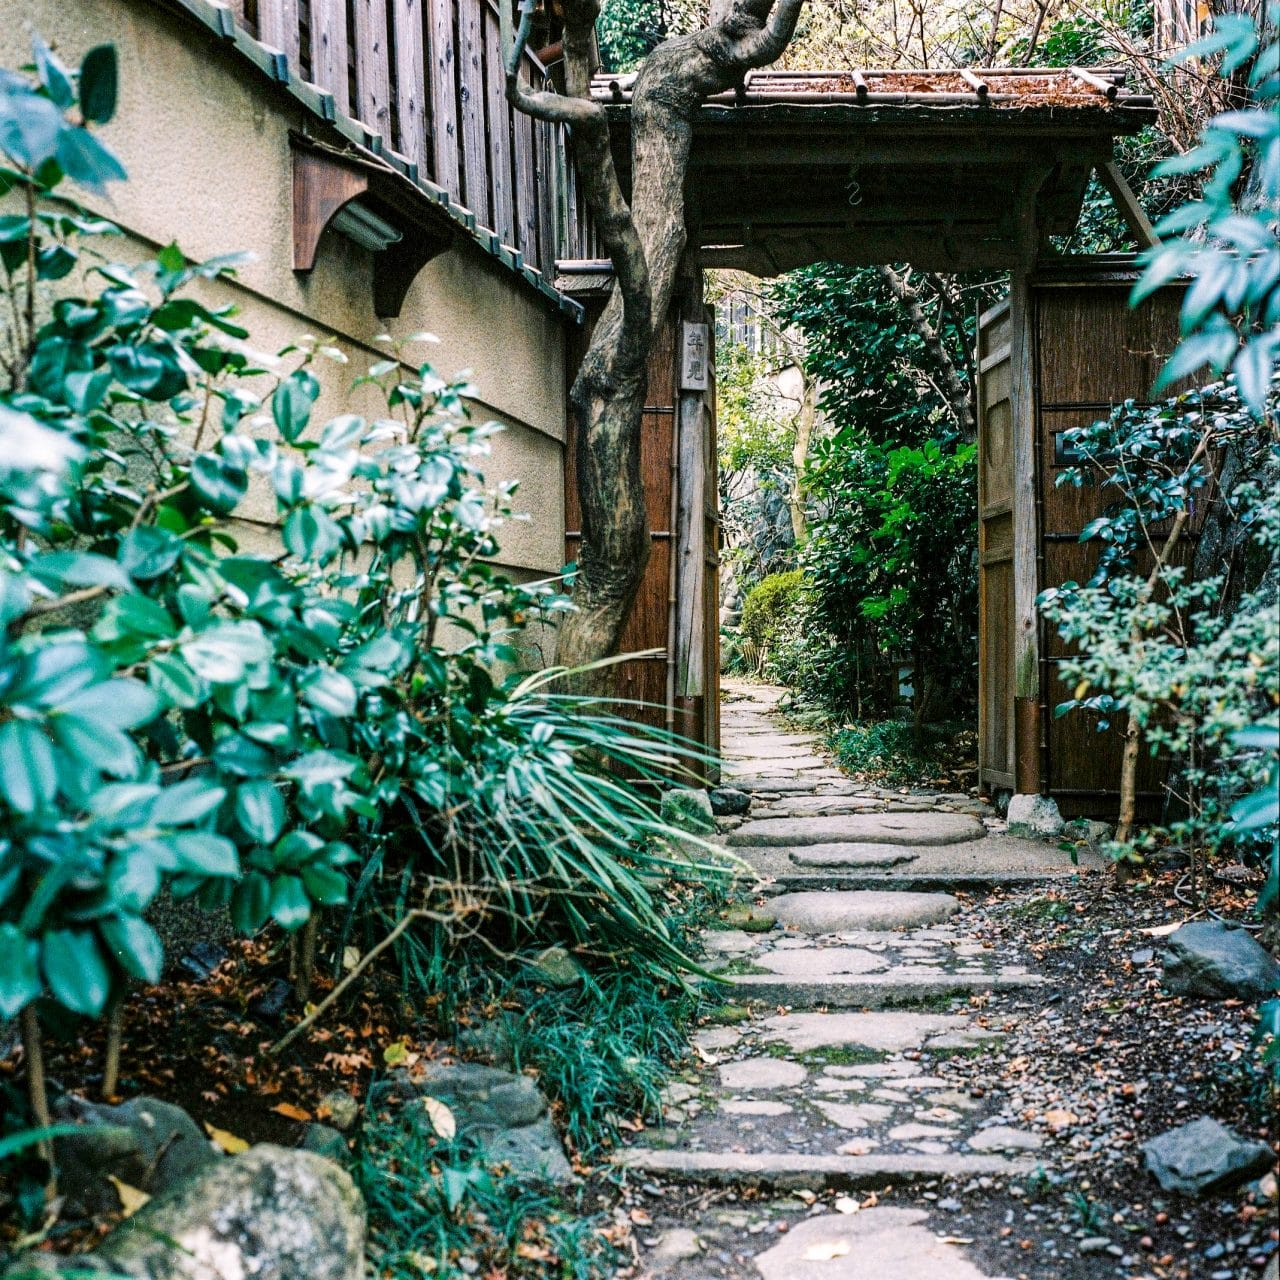 Side entrance - Shot on Kodak Portra 400 at EI 400. Color negative film in 120 format shot as 6x4.5.